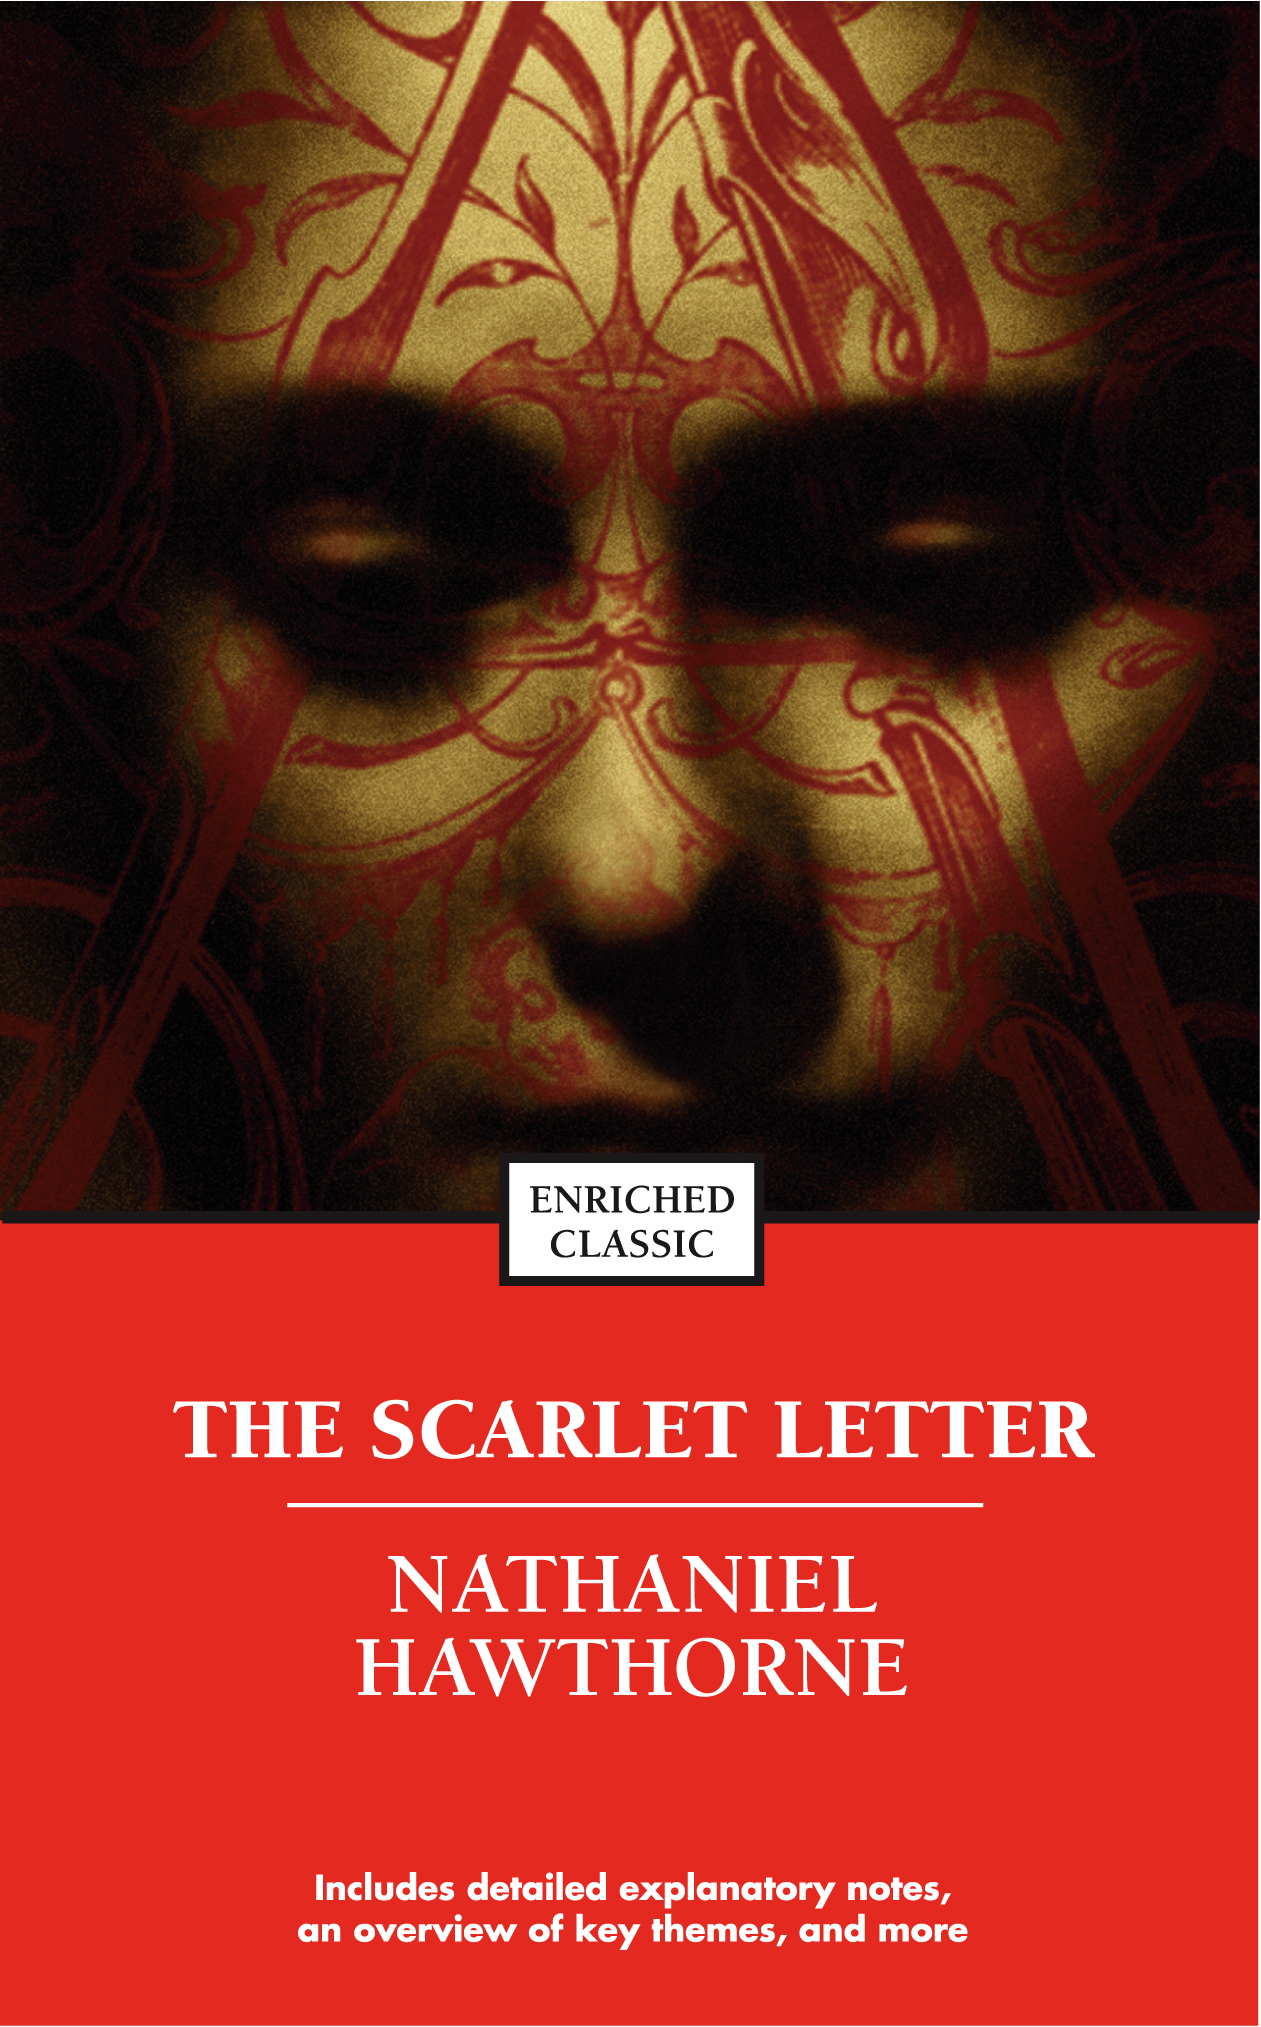 an analysis of puritan society in the scarlet letter by nathaniel hawthorne Need help on themes in nathaniel hawthorne's the scarlet letter  the scarlet letter themes from litcharts  hester has broken puritan society's harsh and strict.